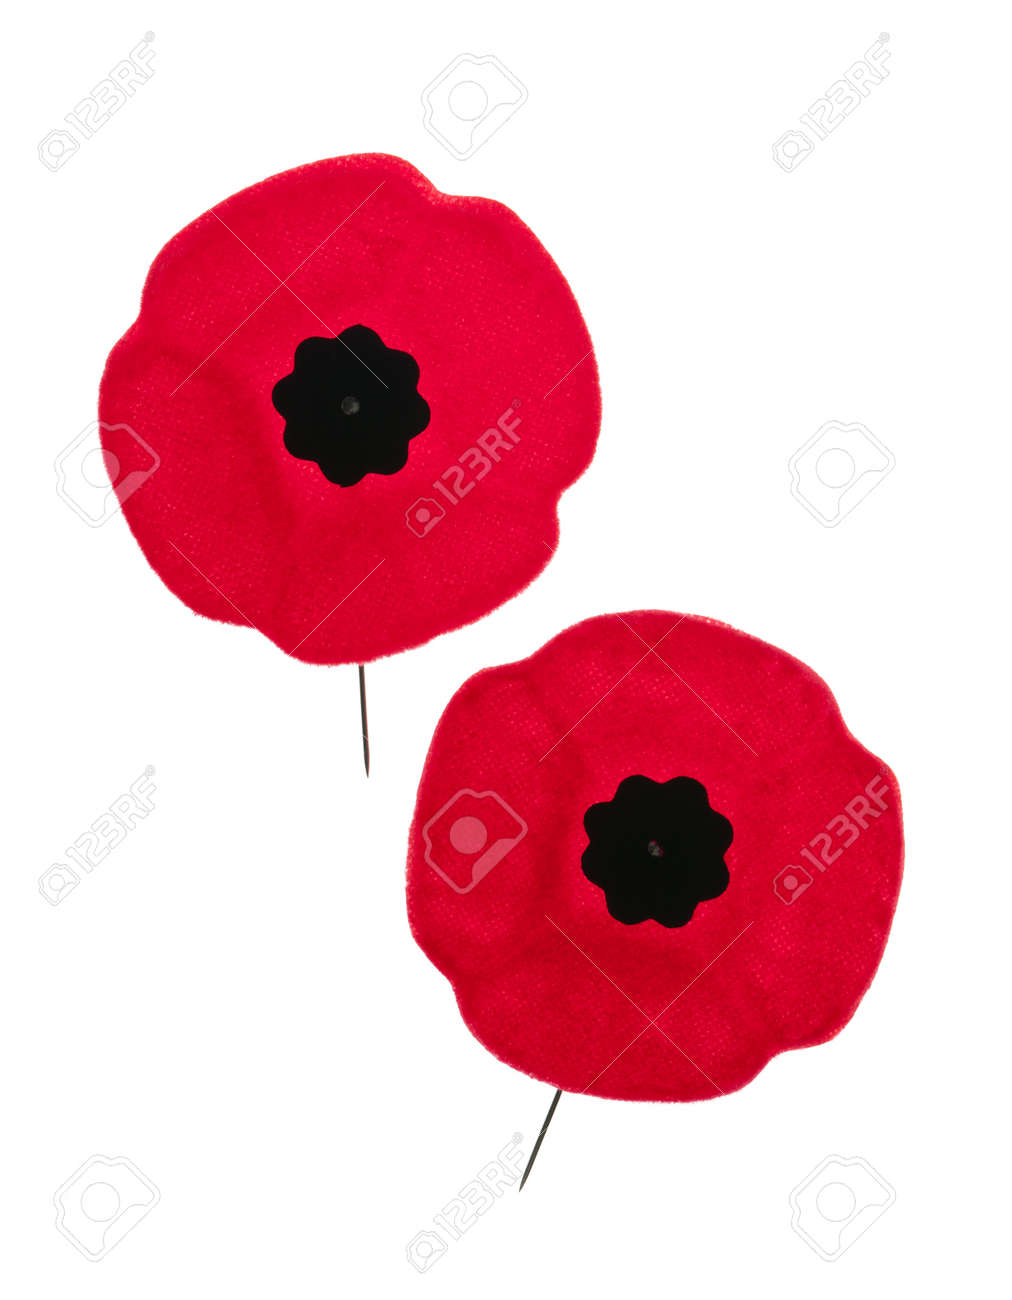 two red poppy lapel pins for remembrance day stock photo picture